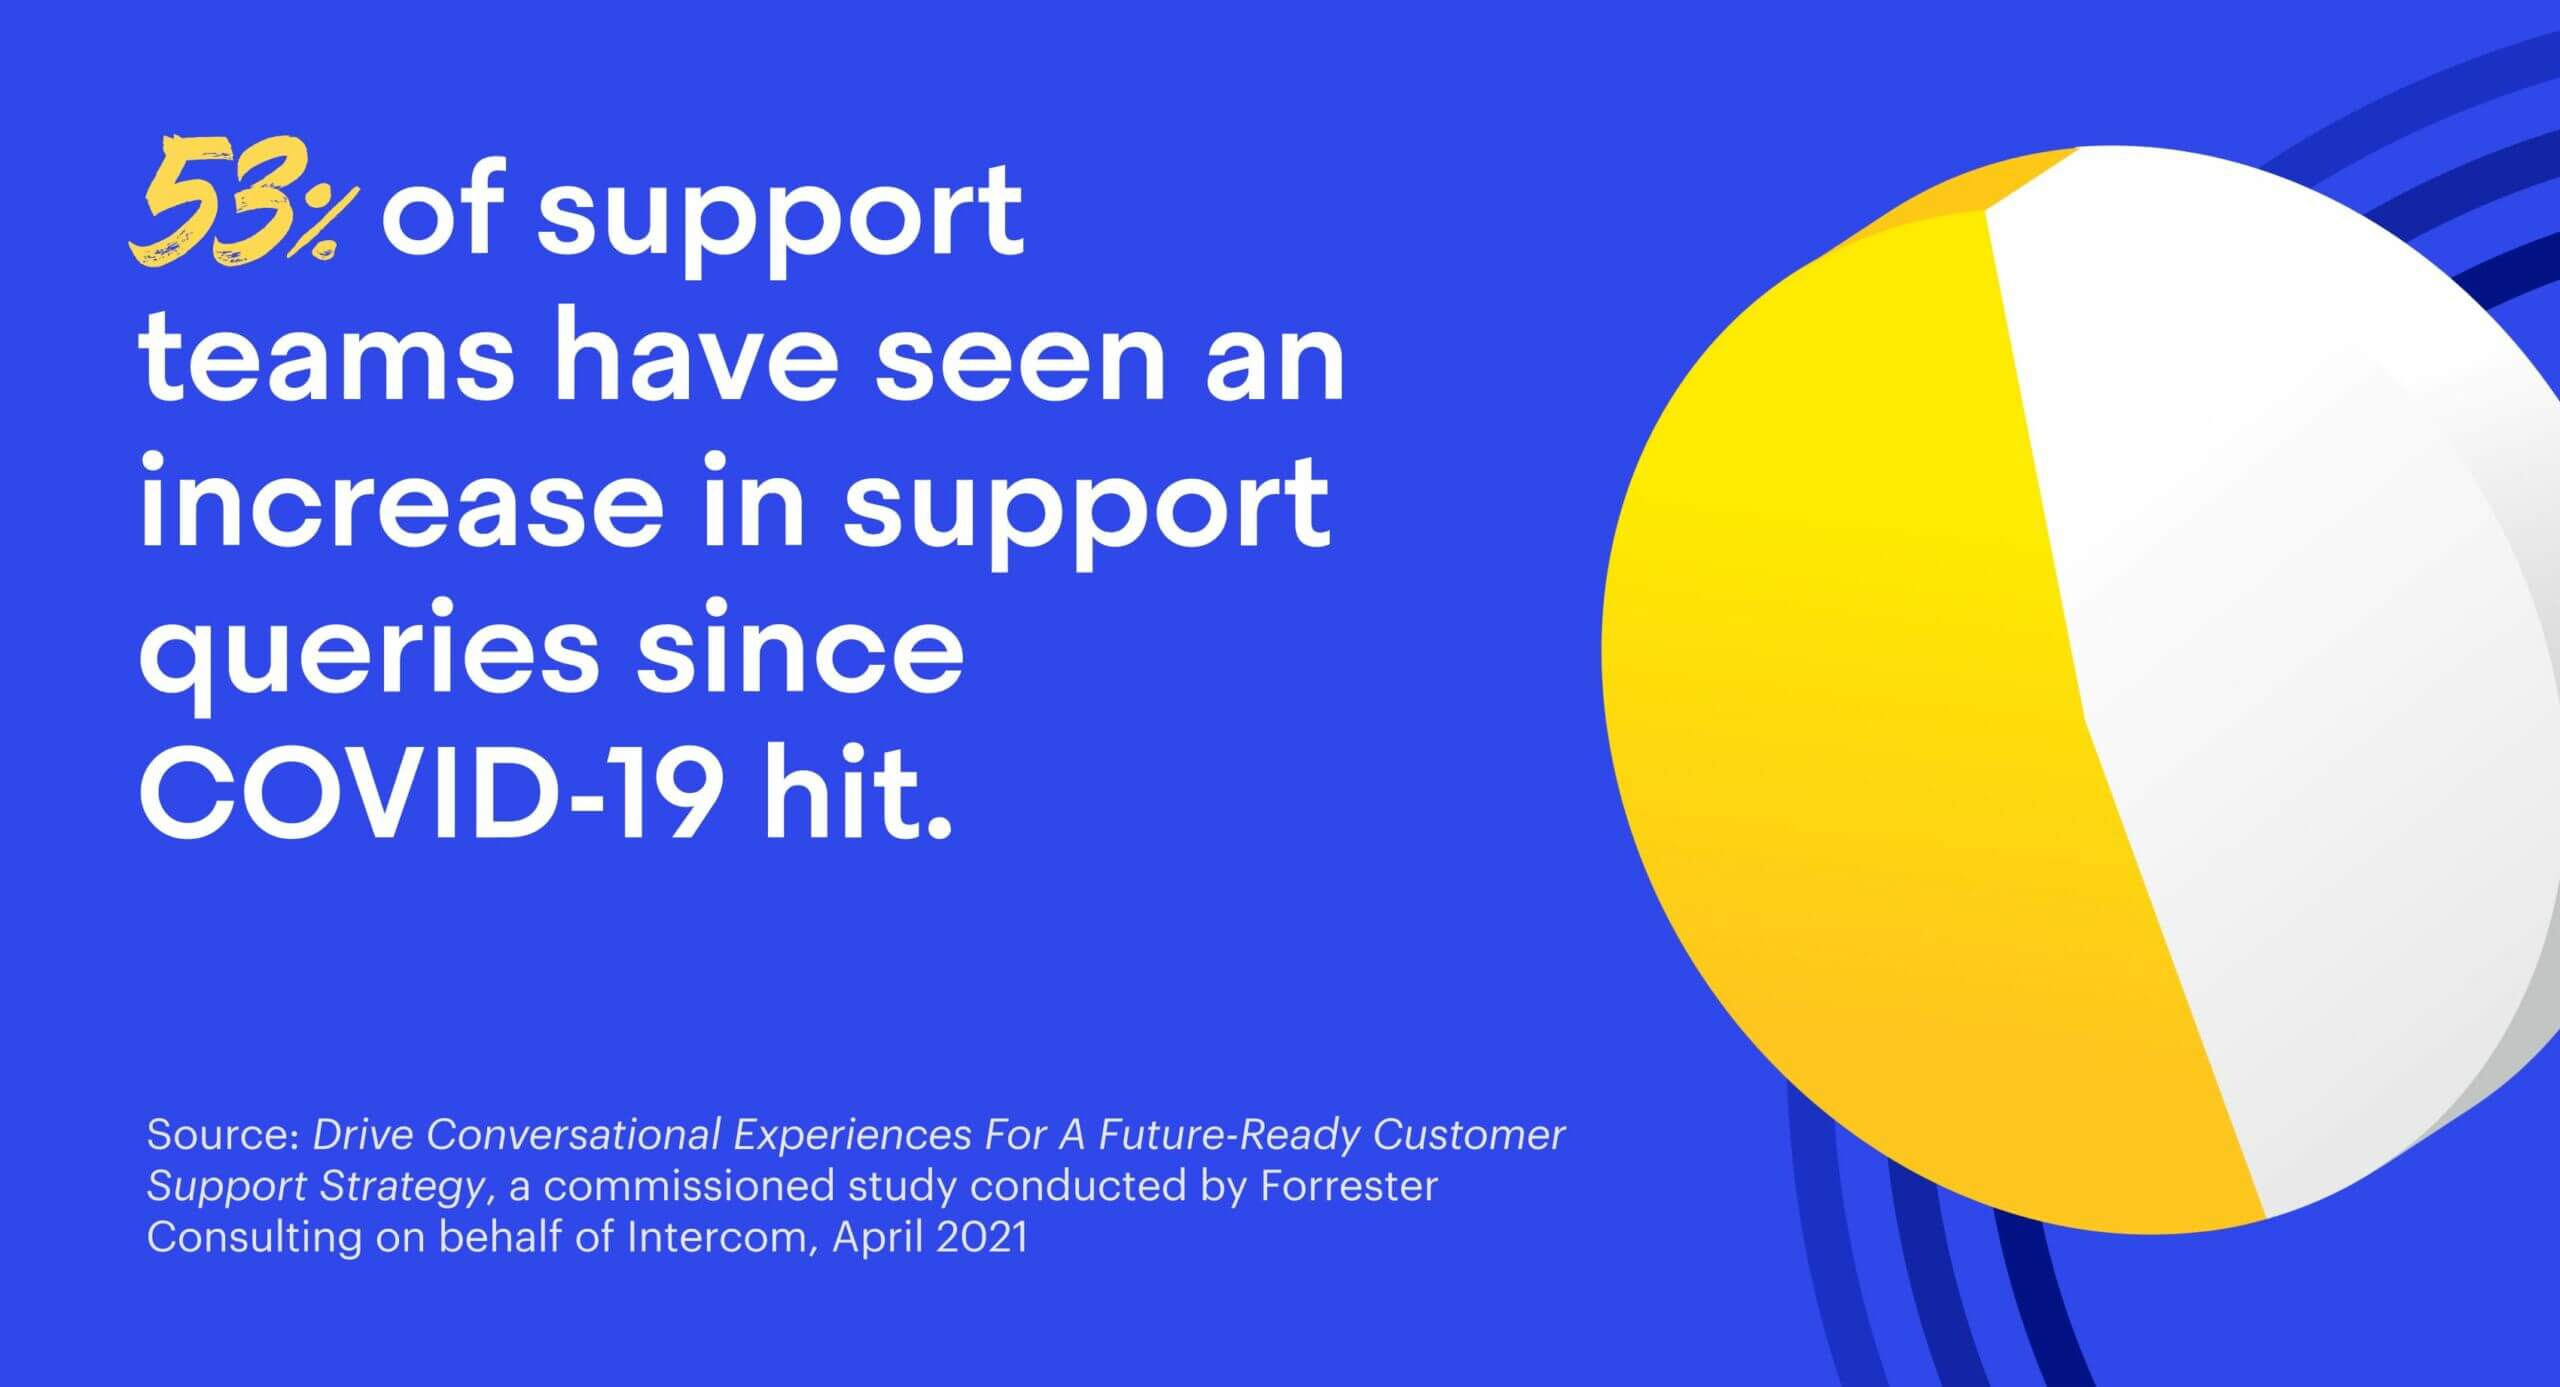 53% of support teams have seen a meaningful increase in support queries since COVID-19 hit.